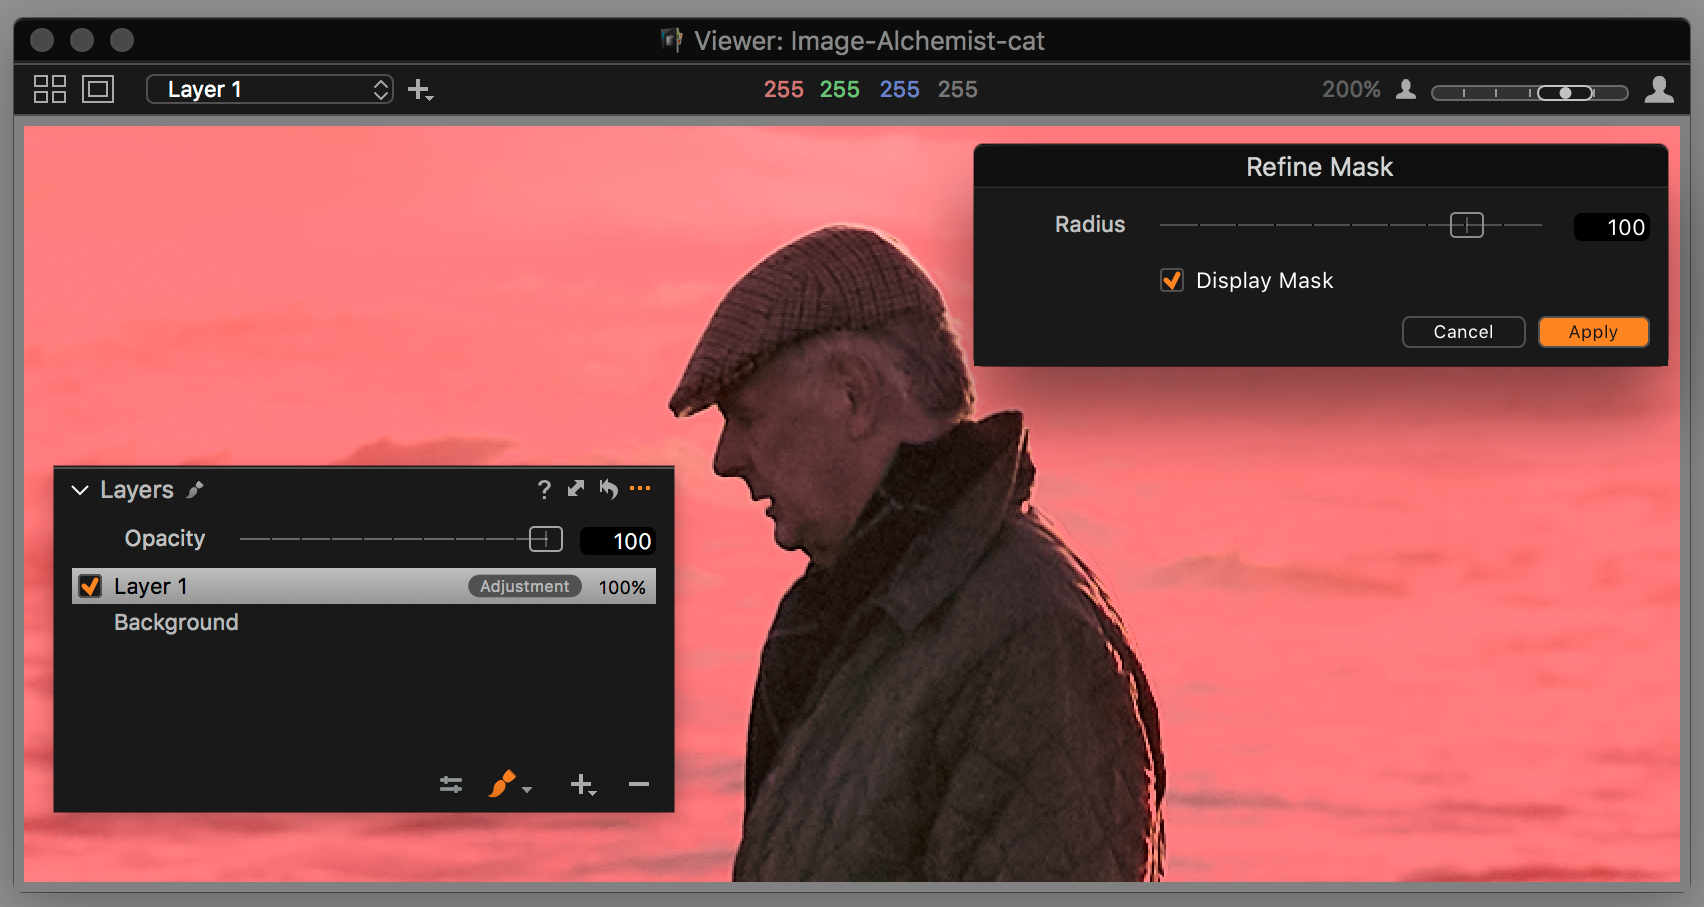 capture one layers in-depth, during refine mask